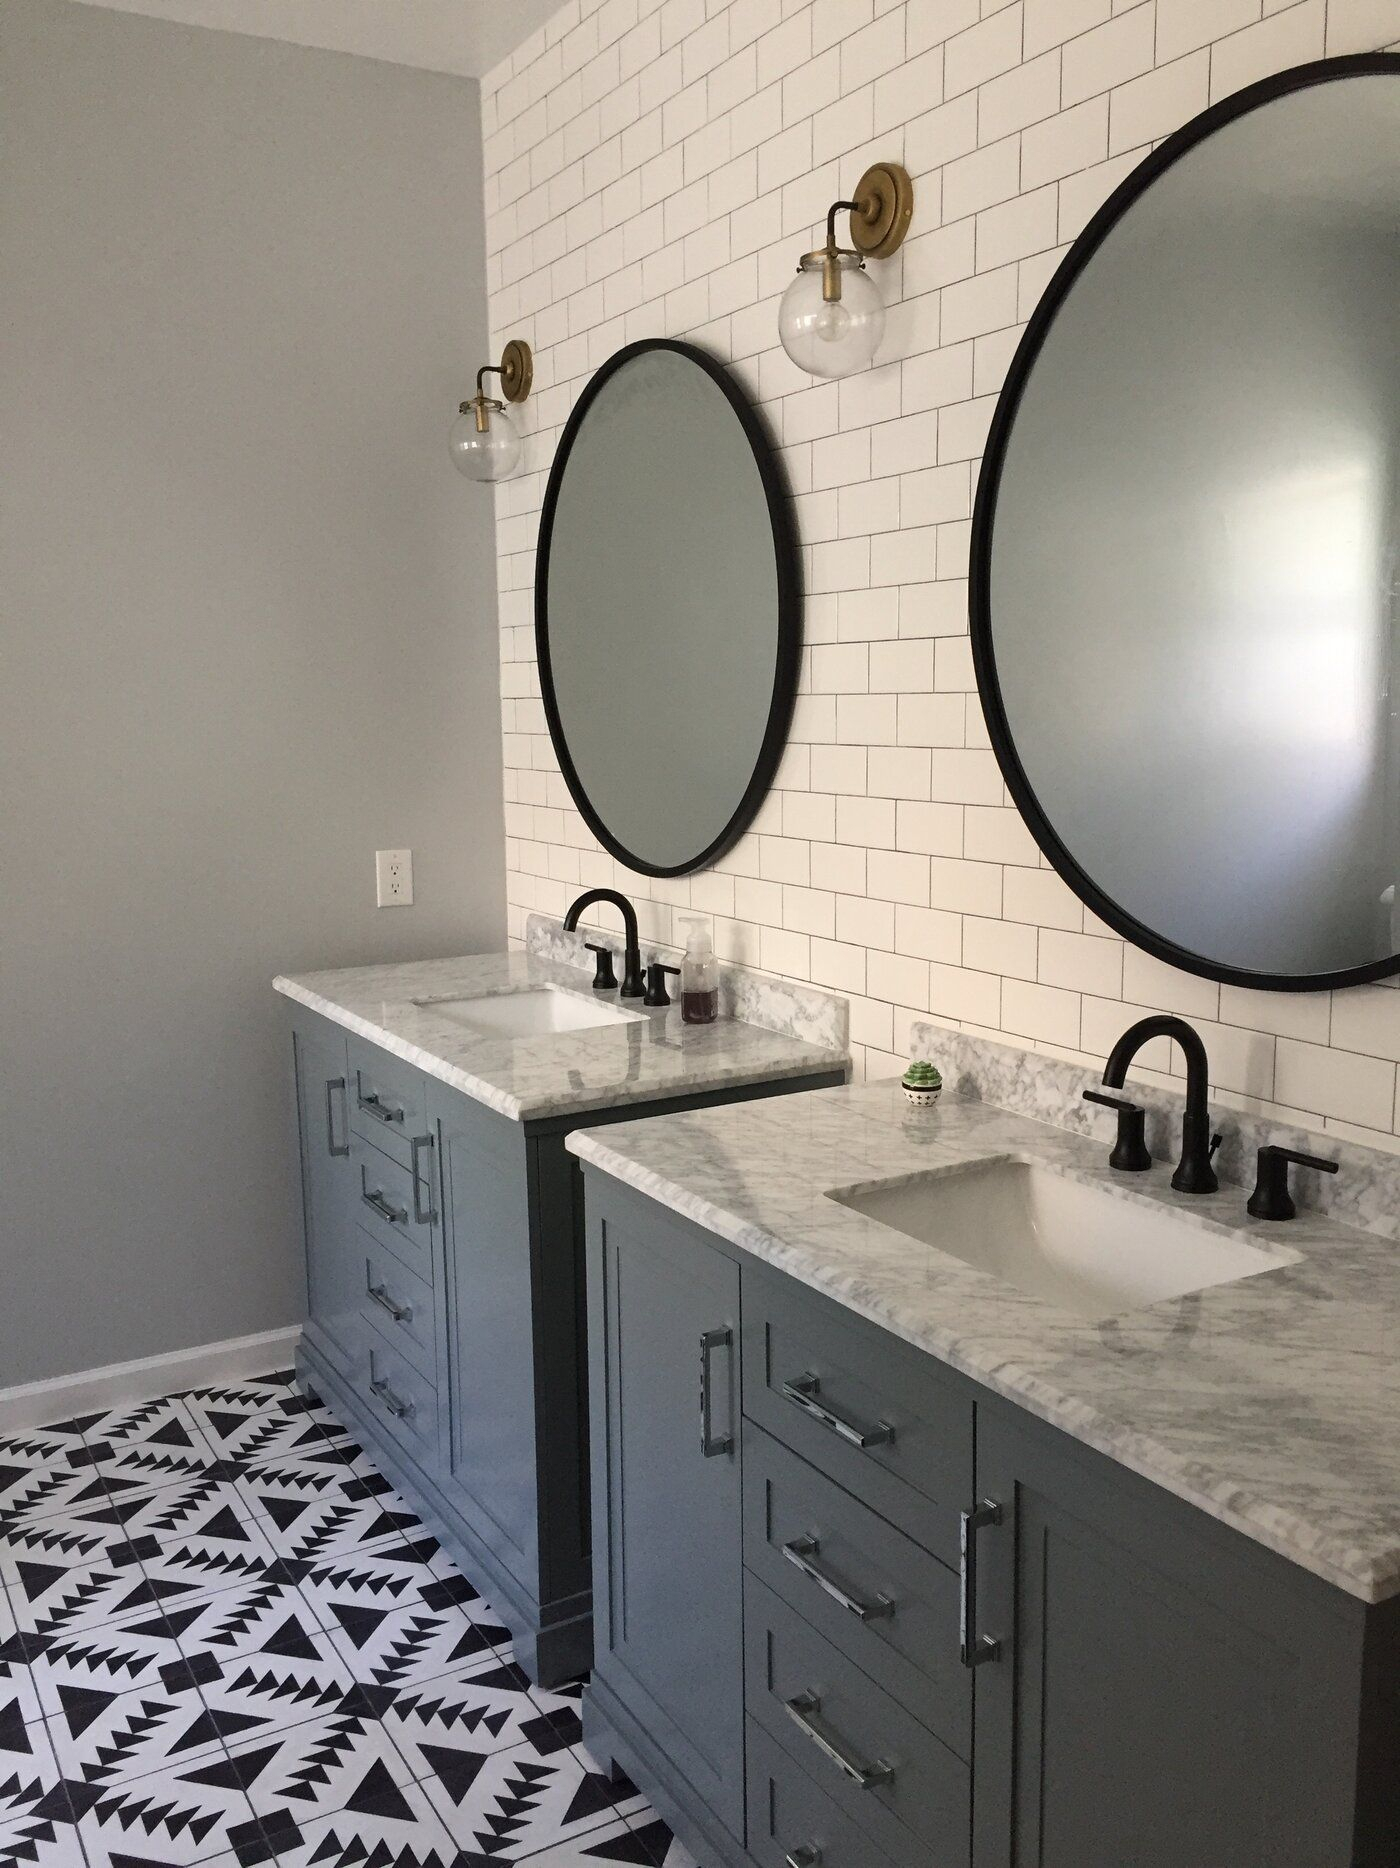 Hub Modern And Contemporary Accent Mirror In 2019 | Bathroom Within Newtown Accent Mirrors (View 20 of 30)